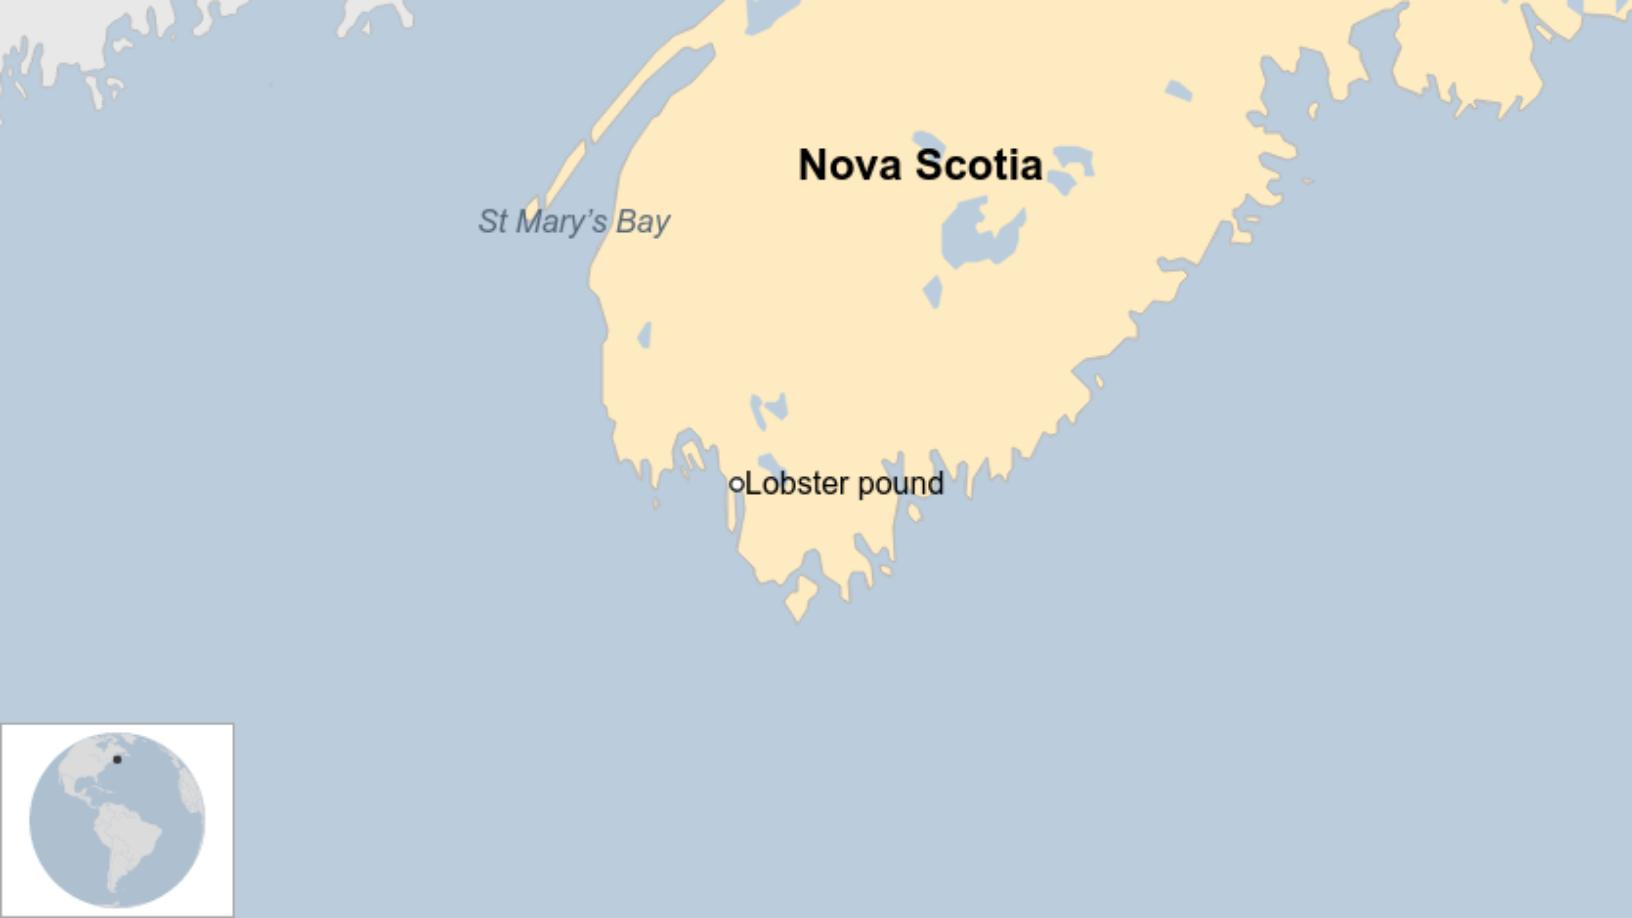 Map: Locations of the lobster pound and St Mary's Bay in Nova Scotia.